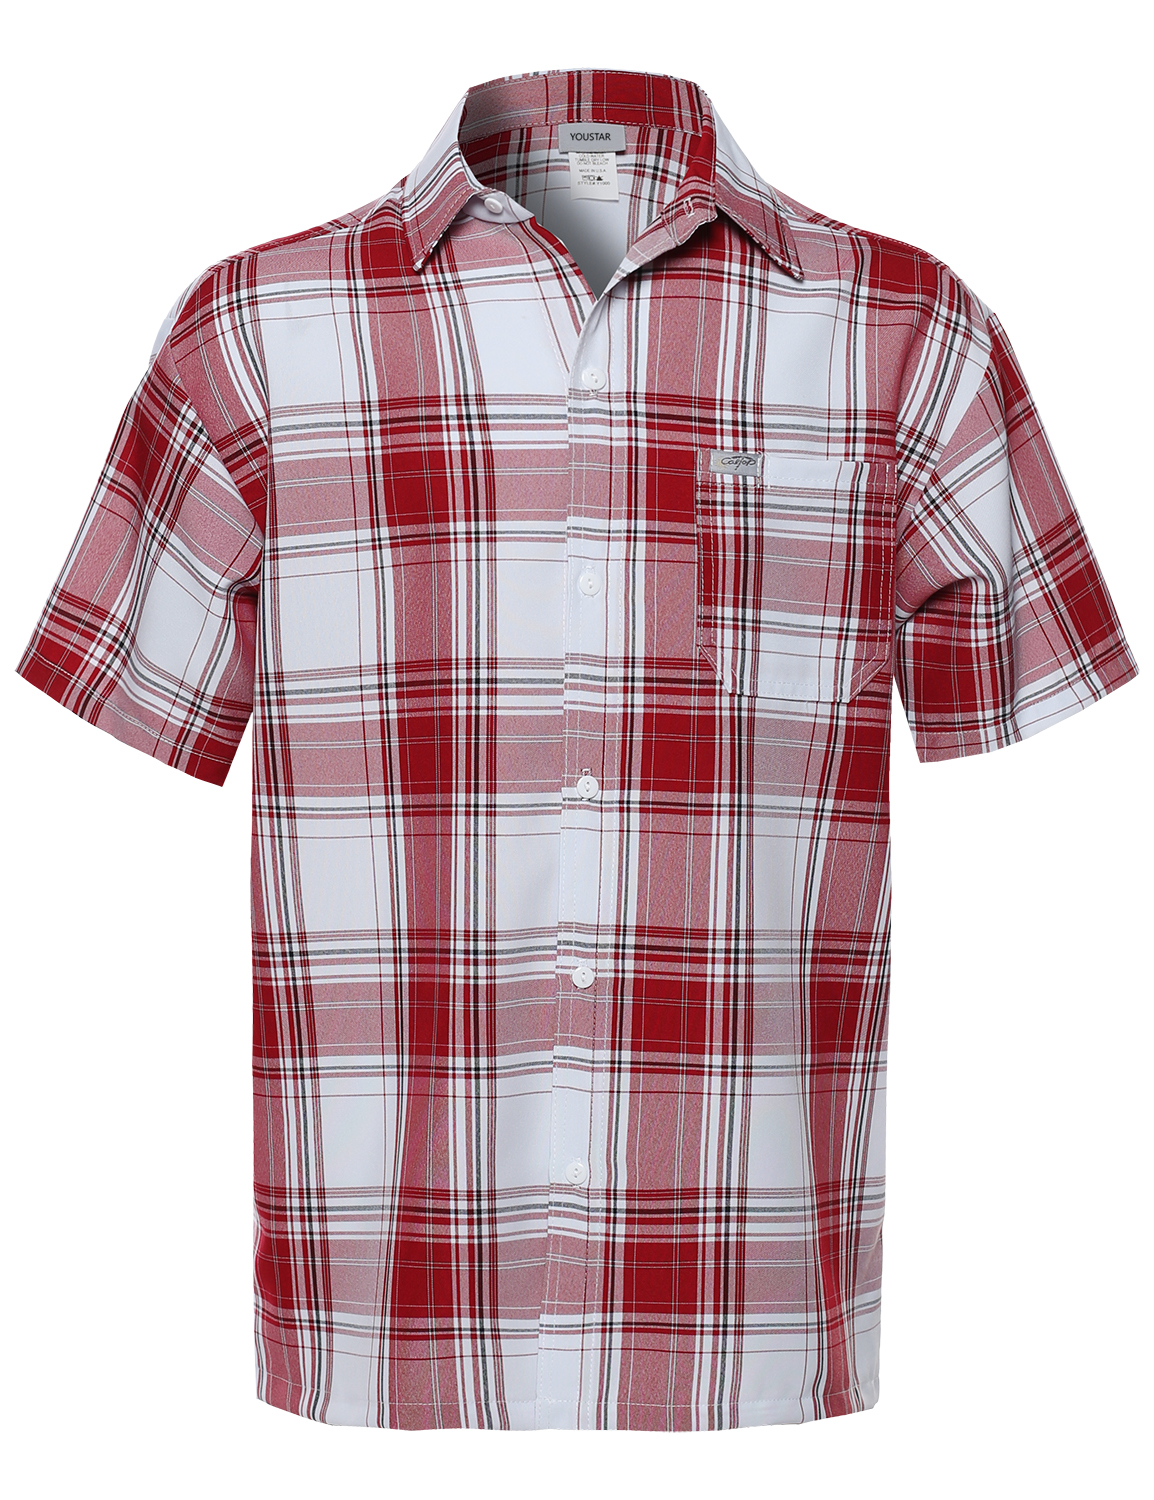 Fashionoutfit men 39 s loose fit plaid checkered short sleeve for Fitted button up shirts mens